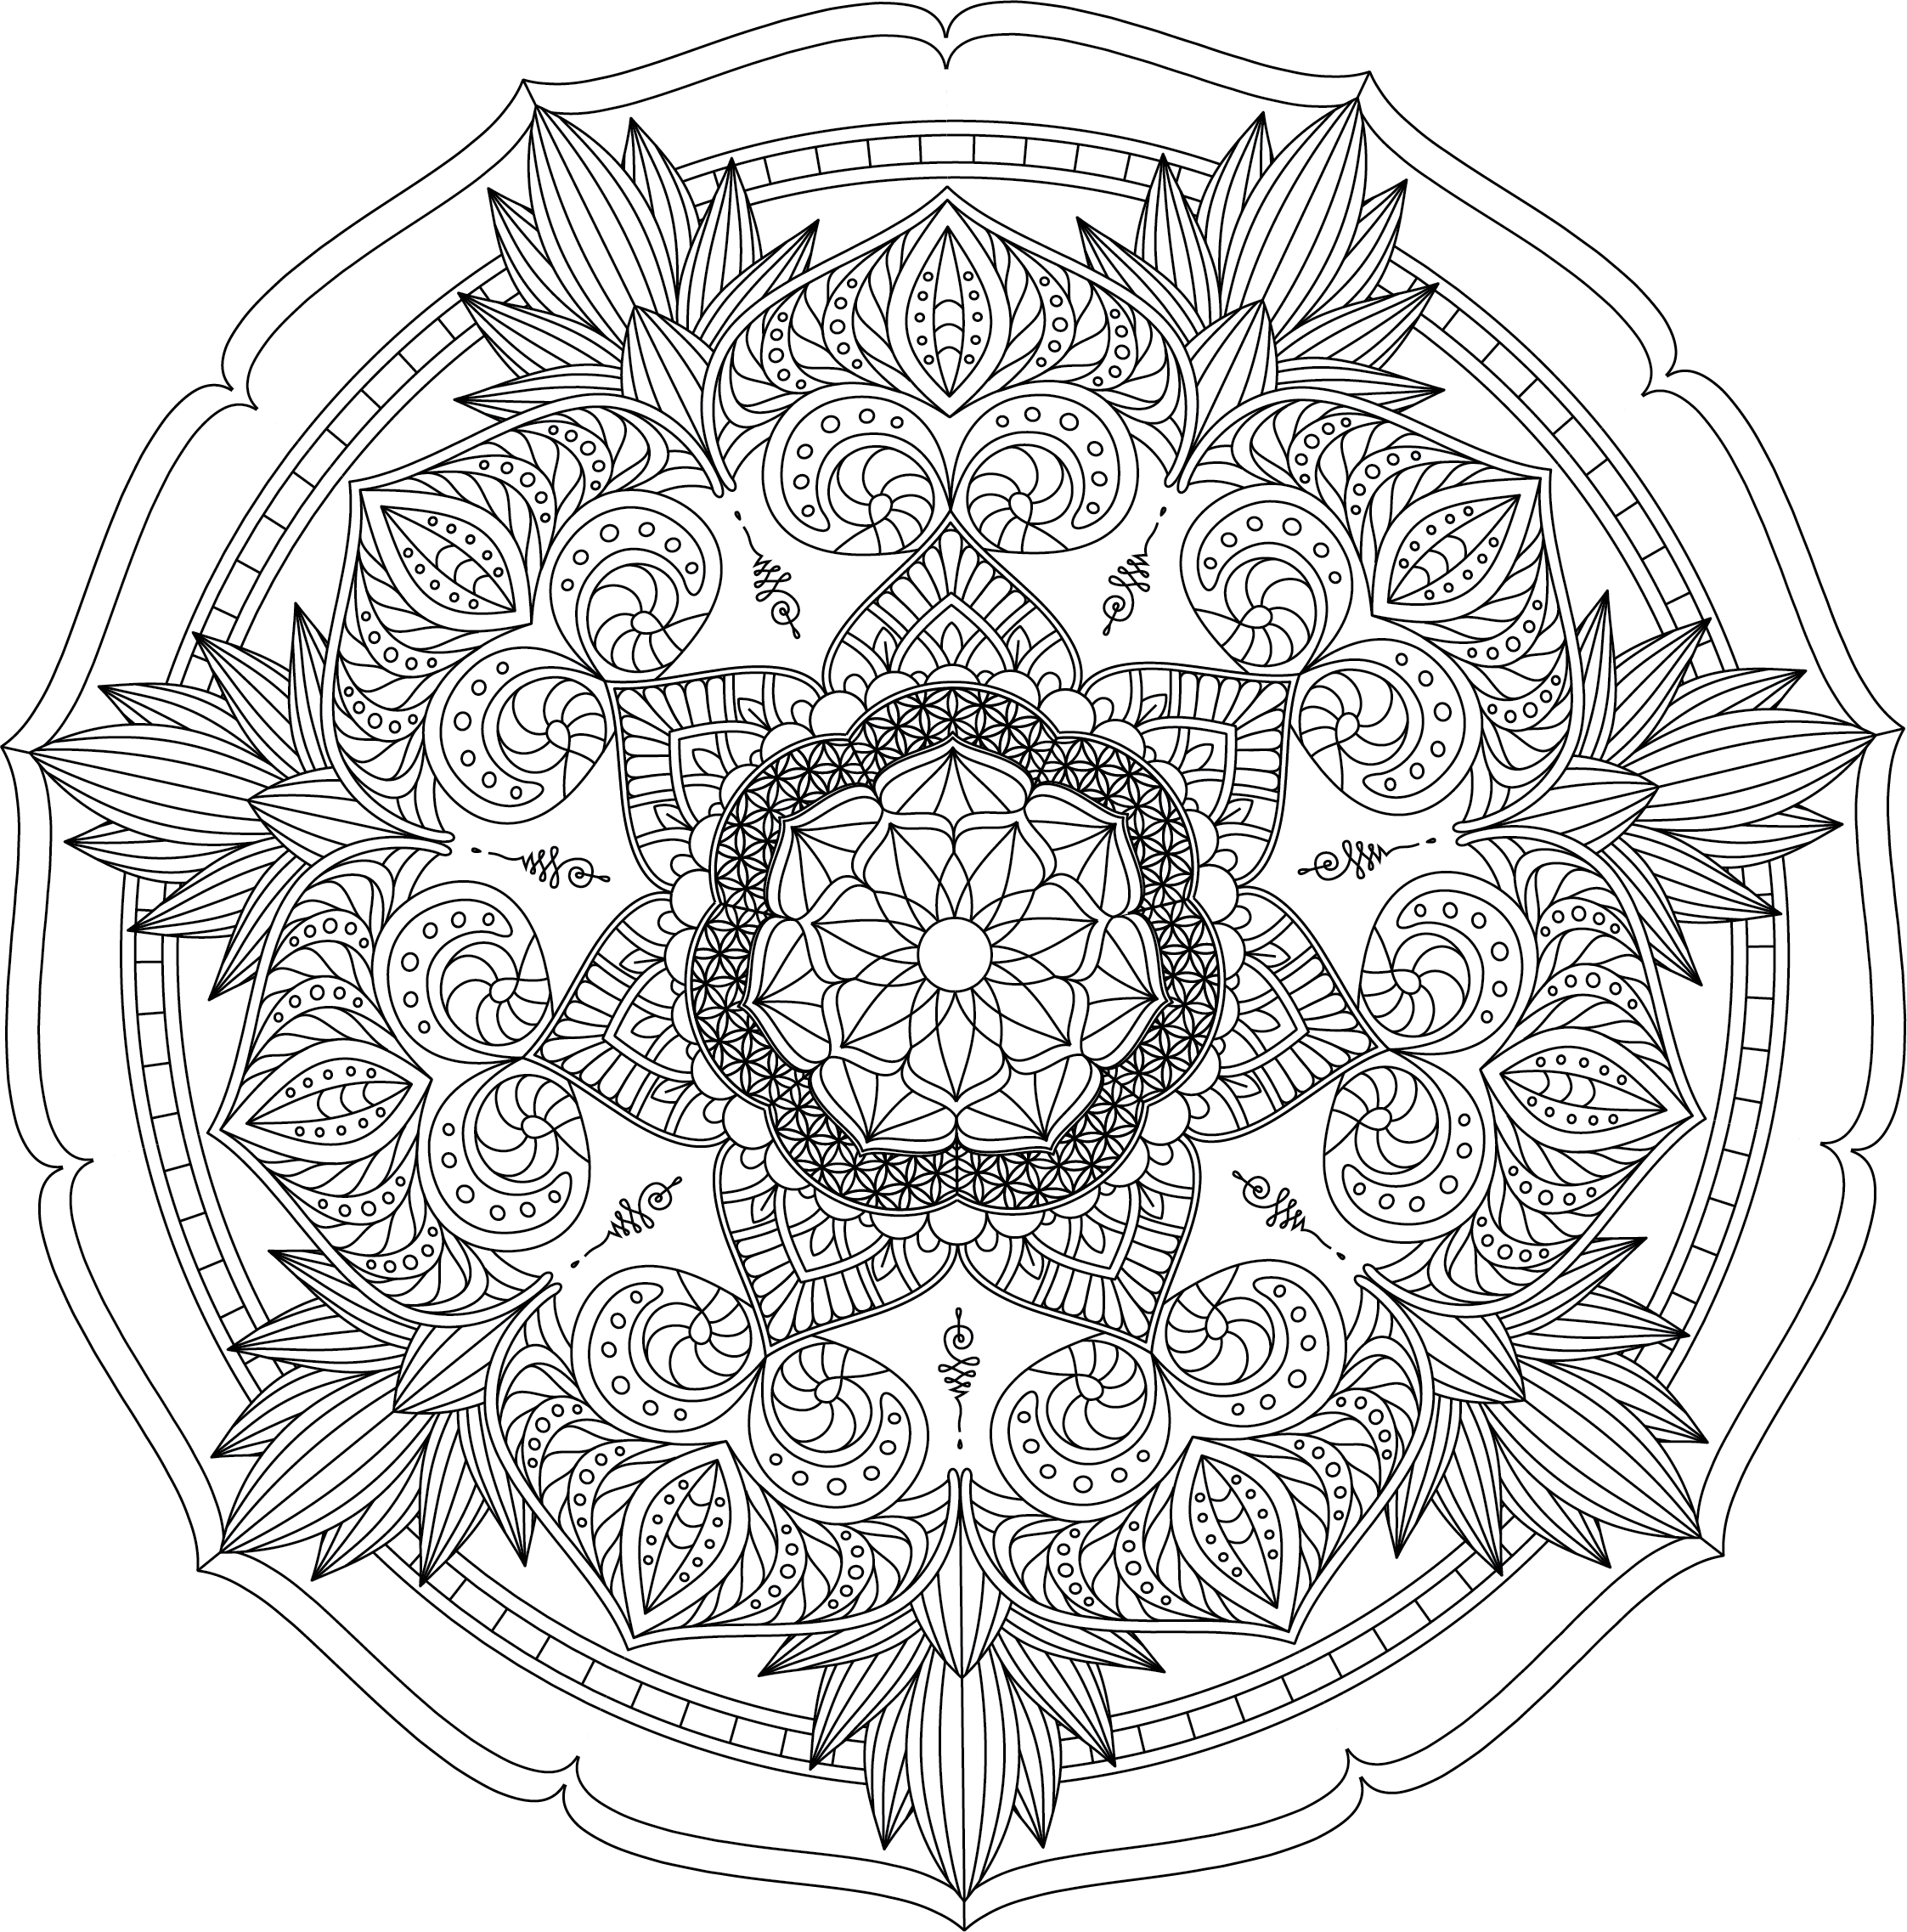 Mandala Monday Free Design To Download And Colour 2019 - 14